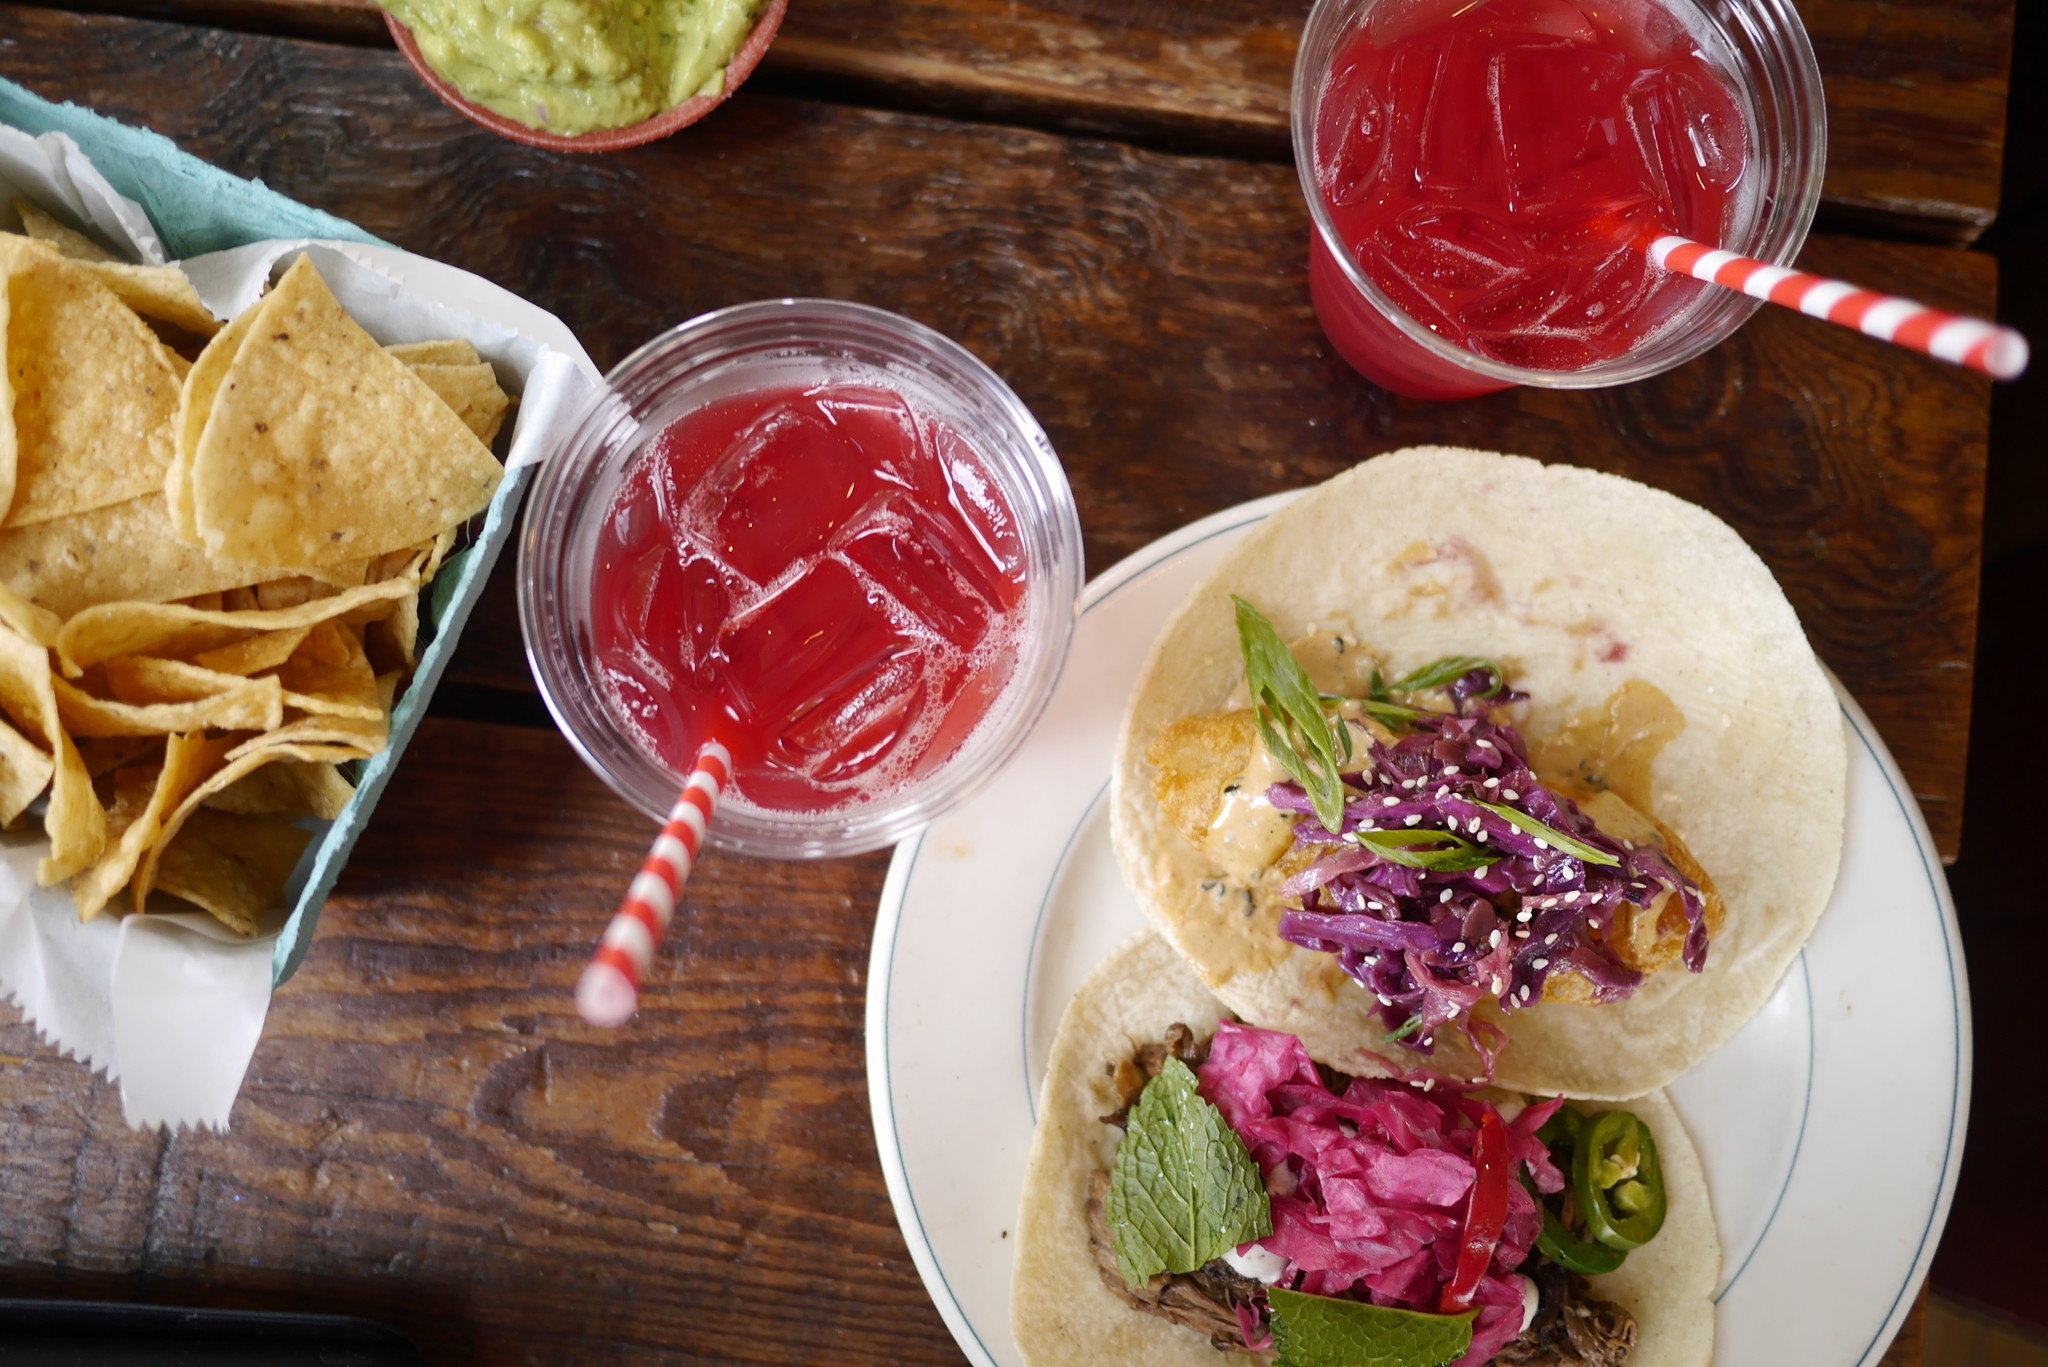 Drop the frozen margarita. There are way better drinks to pair with ...